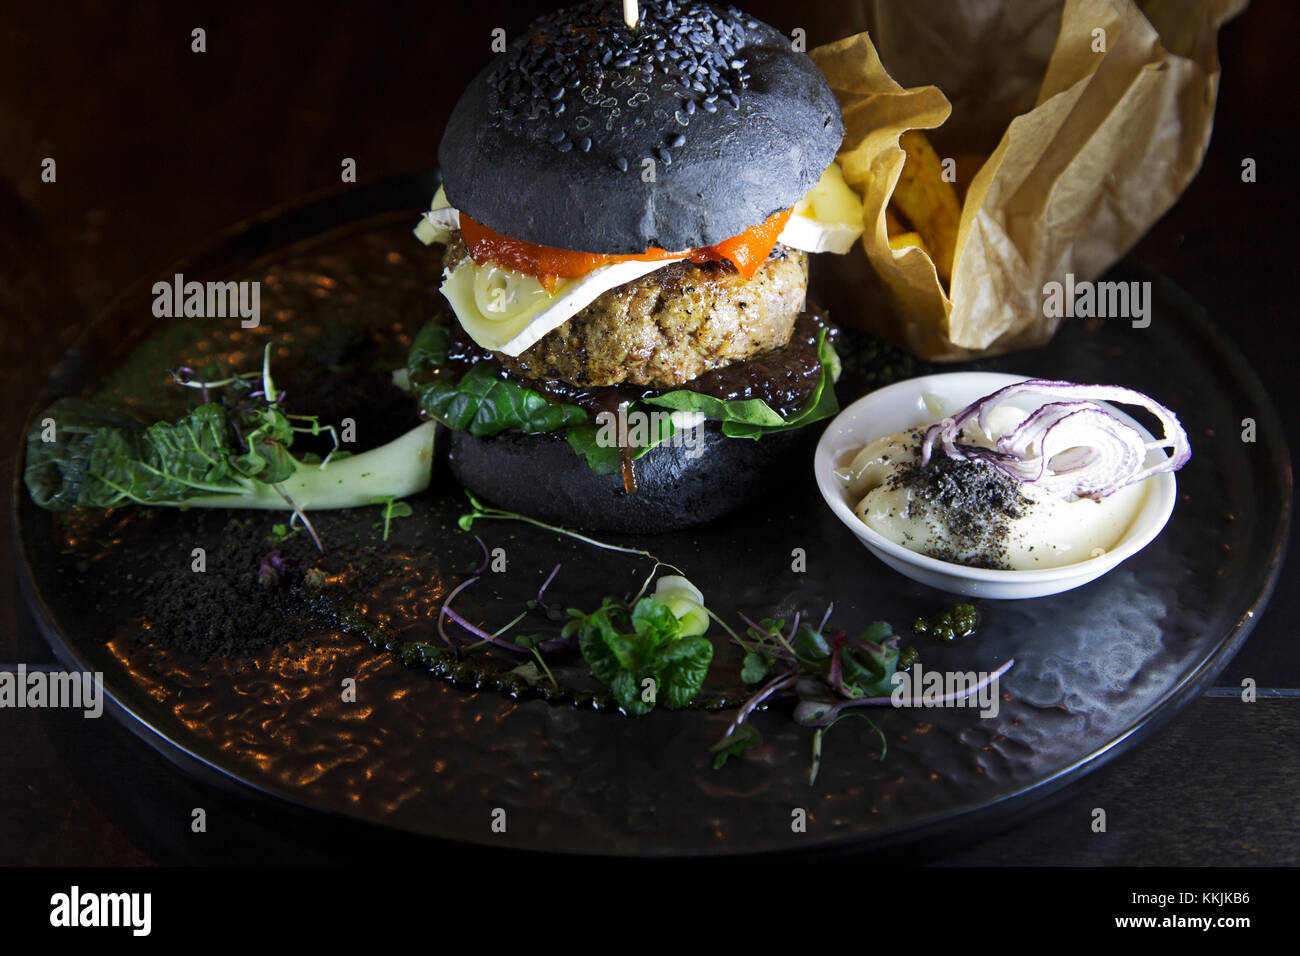 Lamb burger served with in a black bread bun at the Mute restaurant in Riga, Latvia. The burger features a slice - Stock Image